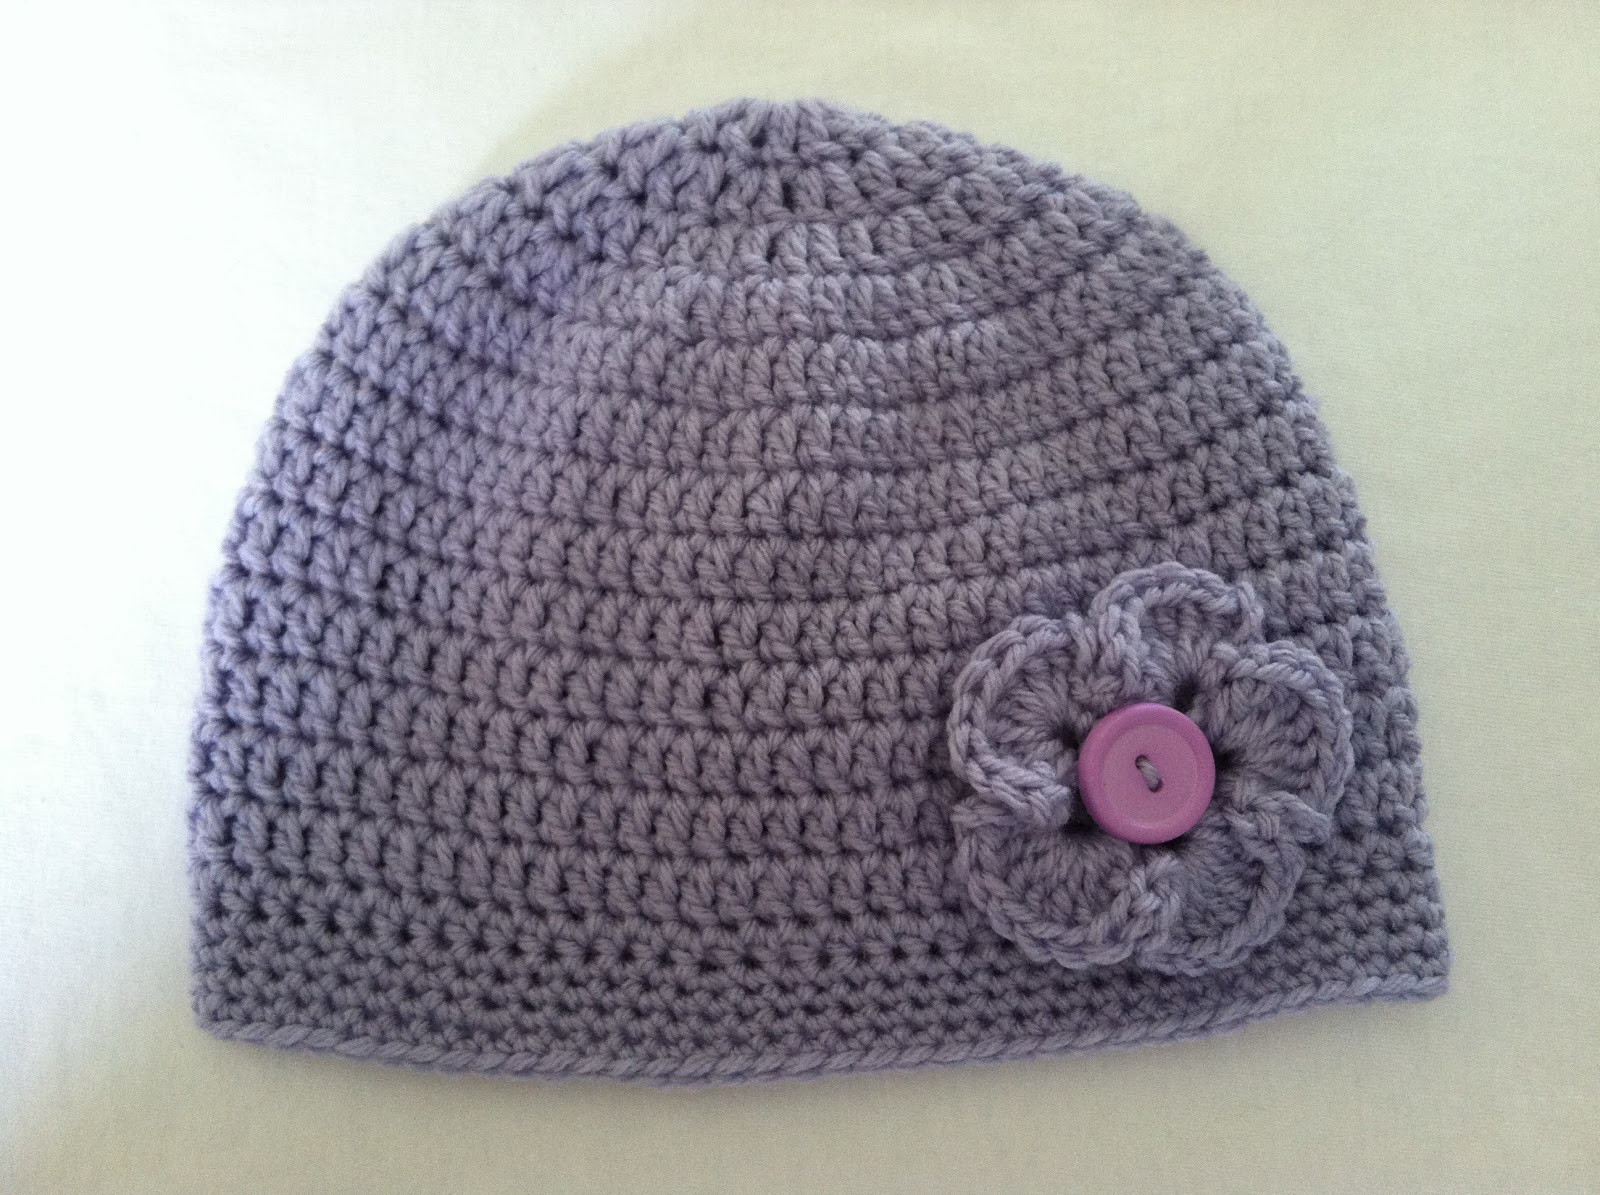 Inspirational Crochet for Cancer Chemo Hat & Flower Patterns Crochet Chemo Hats Of Adorable 42 Images Crochet Chemo Hats